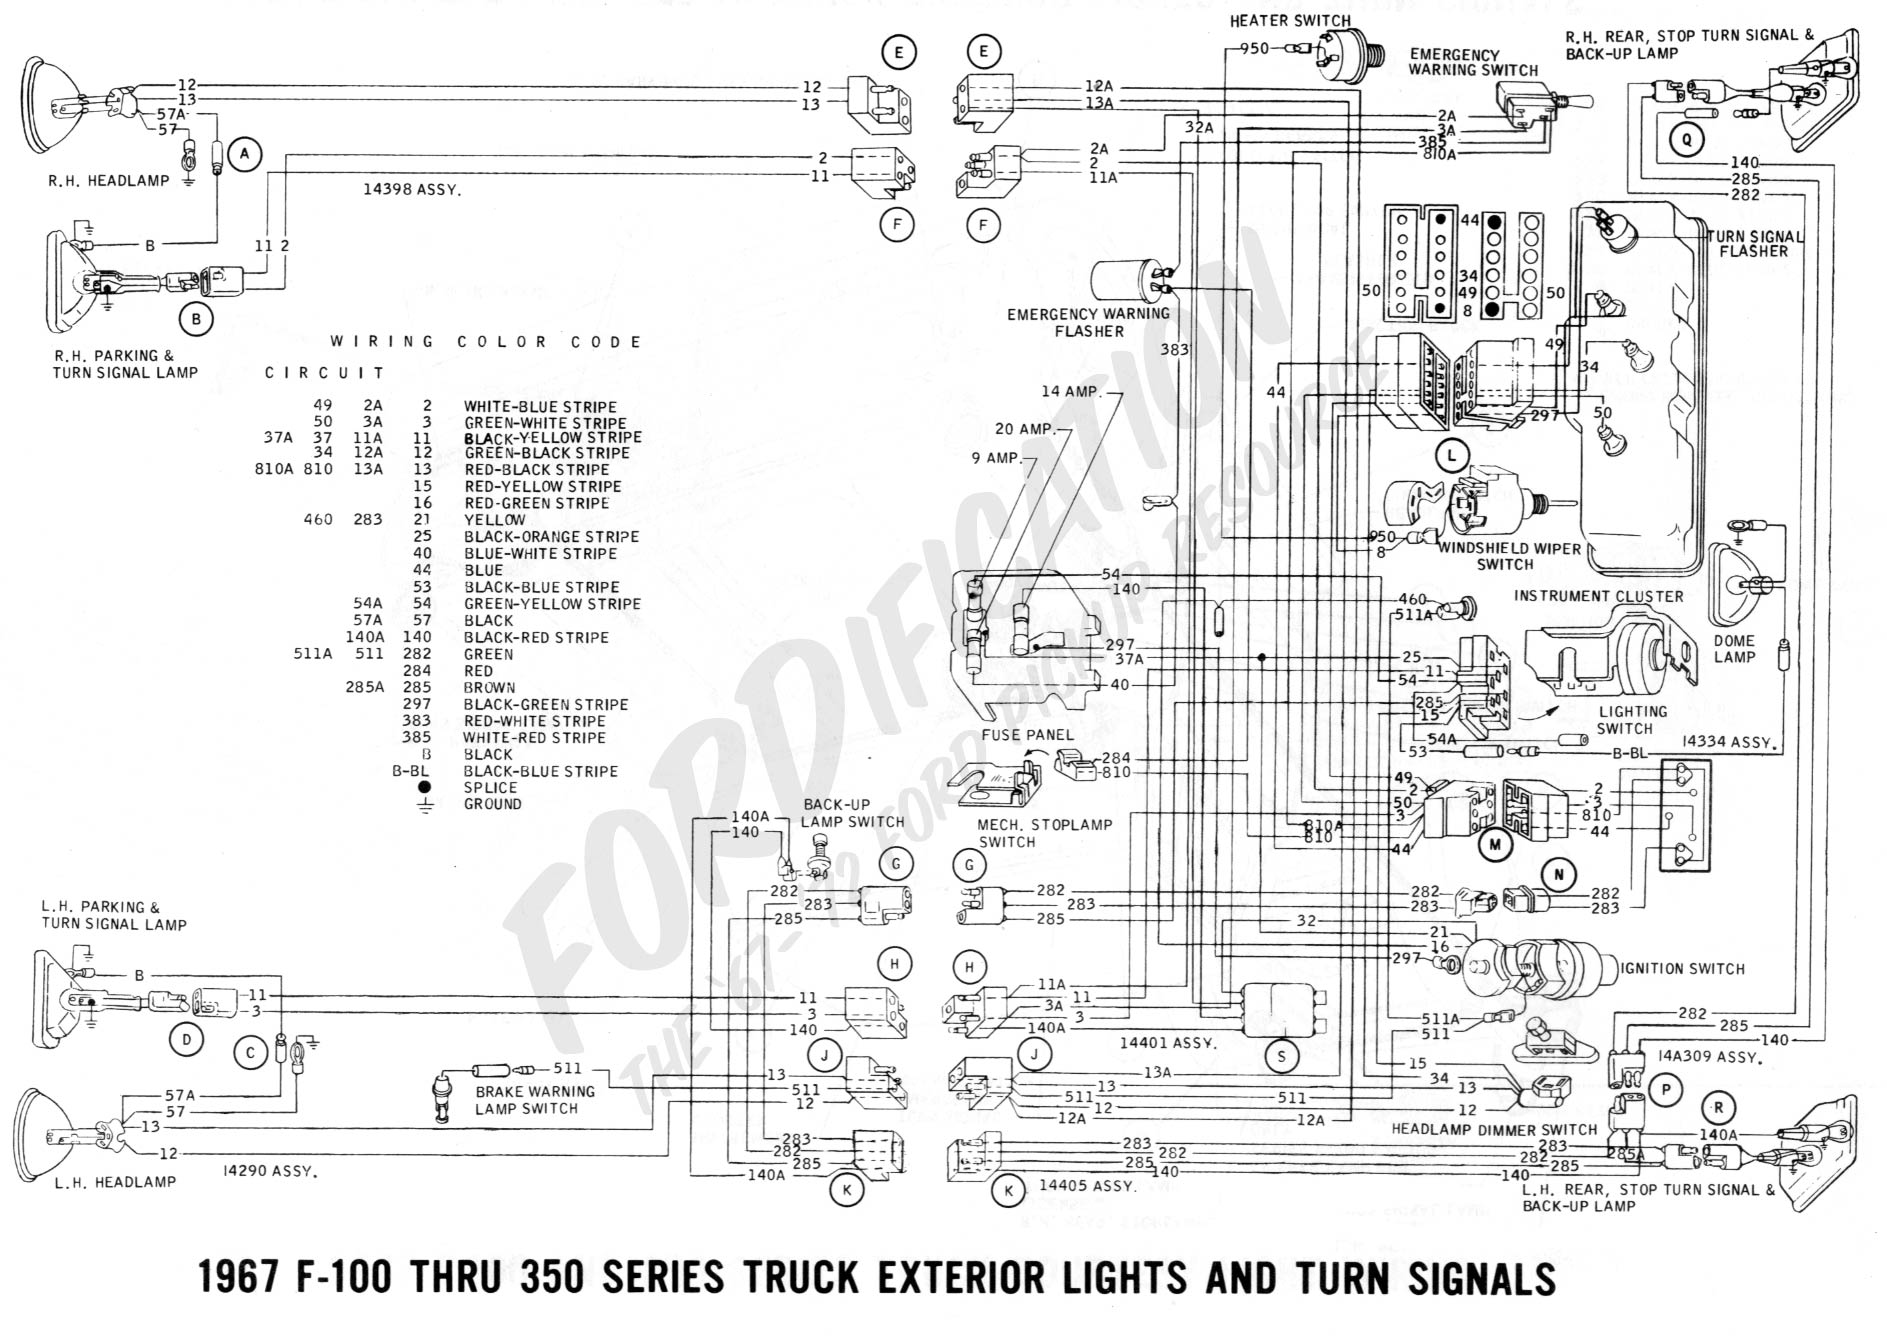 1974 Mgb Wiring Diagram Alternator Data Diagrams 1973 Mg Midget Ford Truck Technical Drawings And Schematics Section H 1976